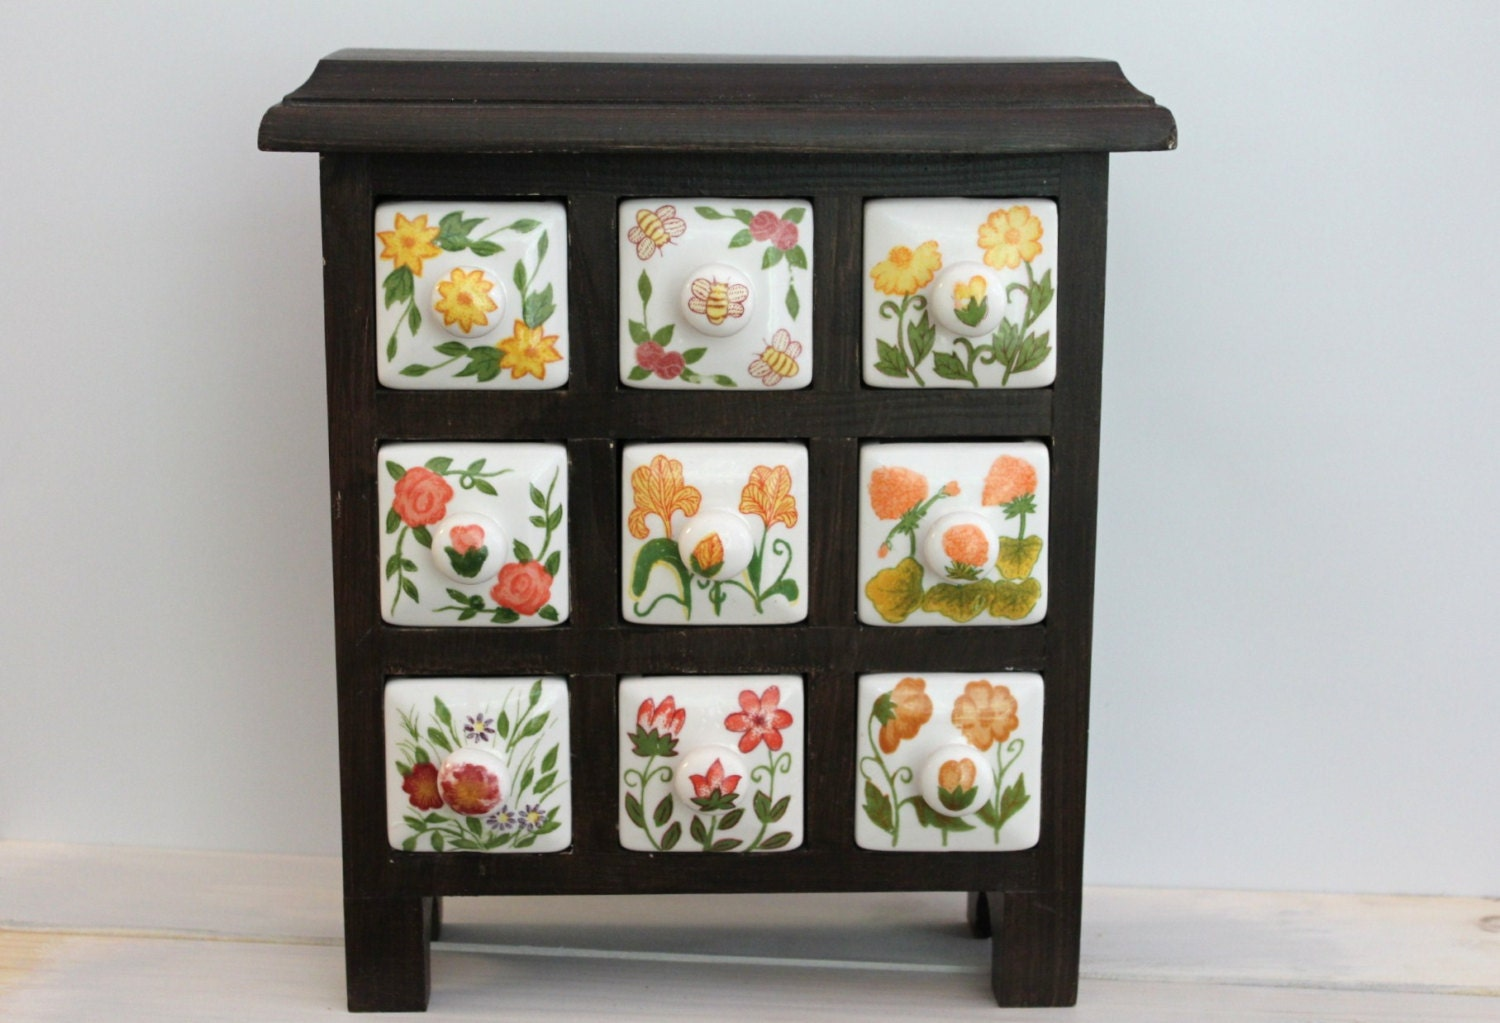 Wooden Spice or Tea Cabinet with 9 ceramic drawers